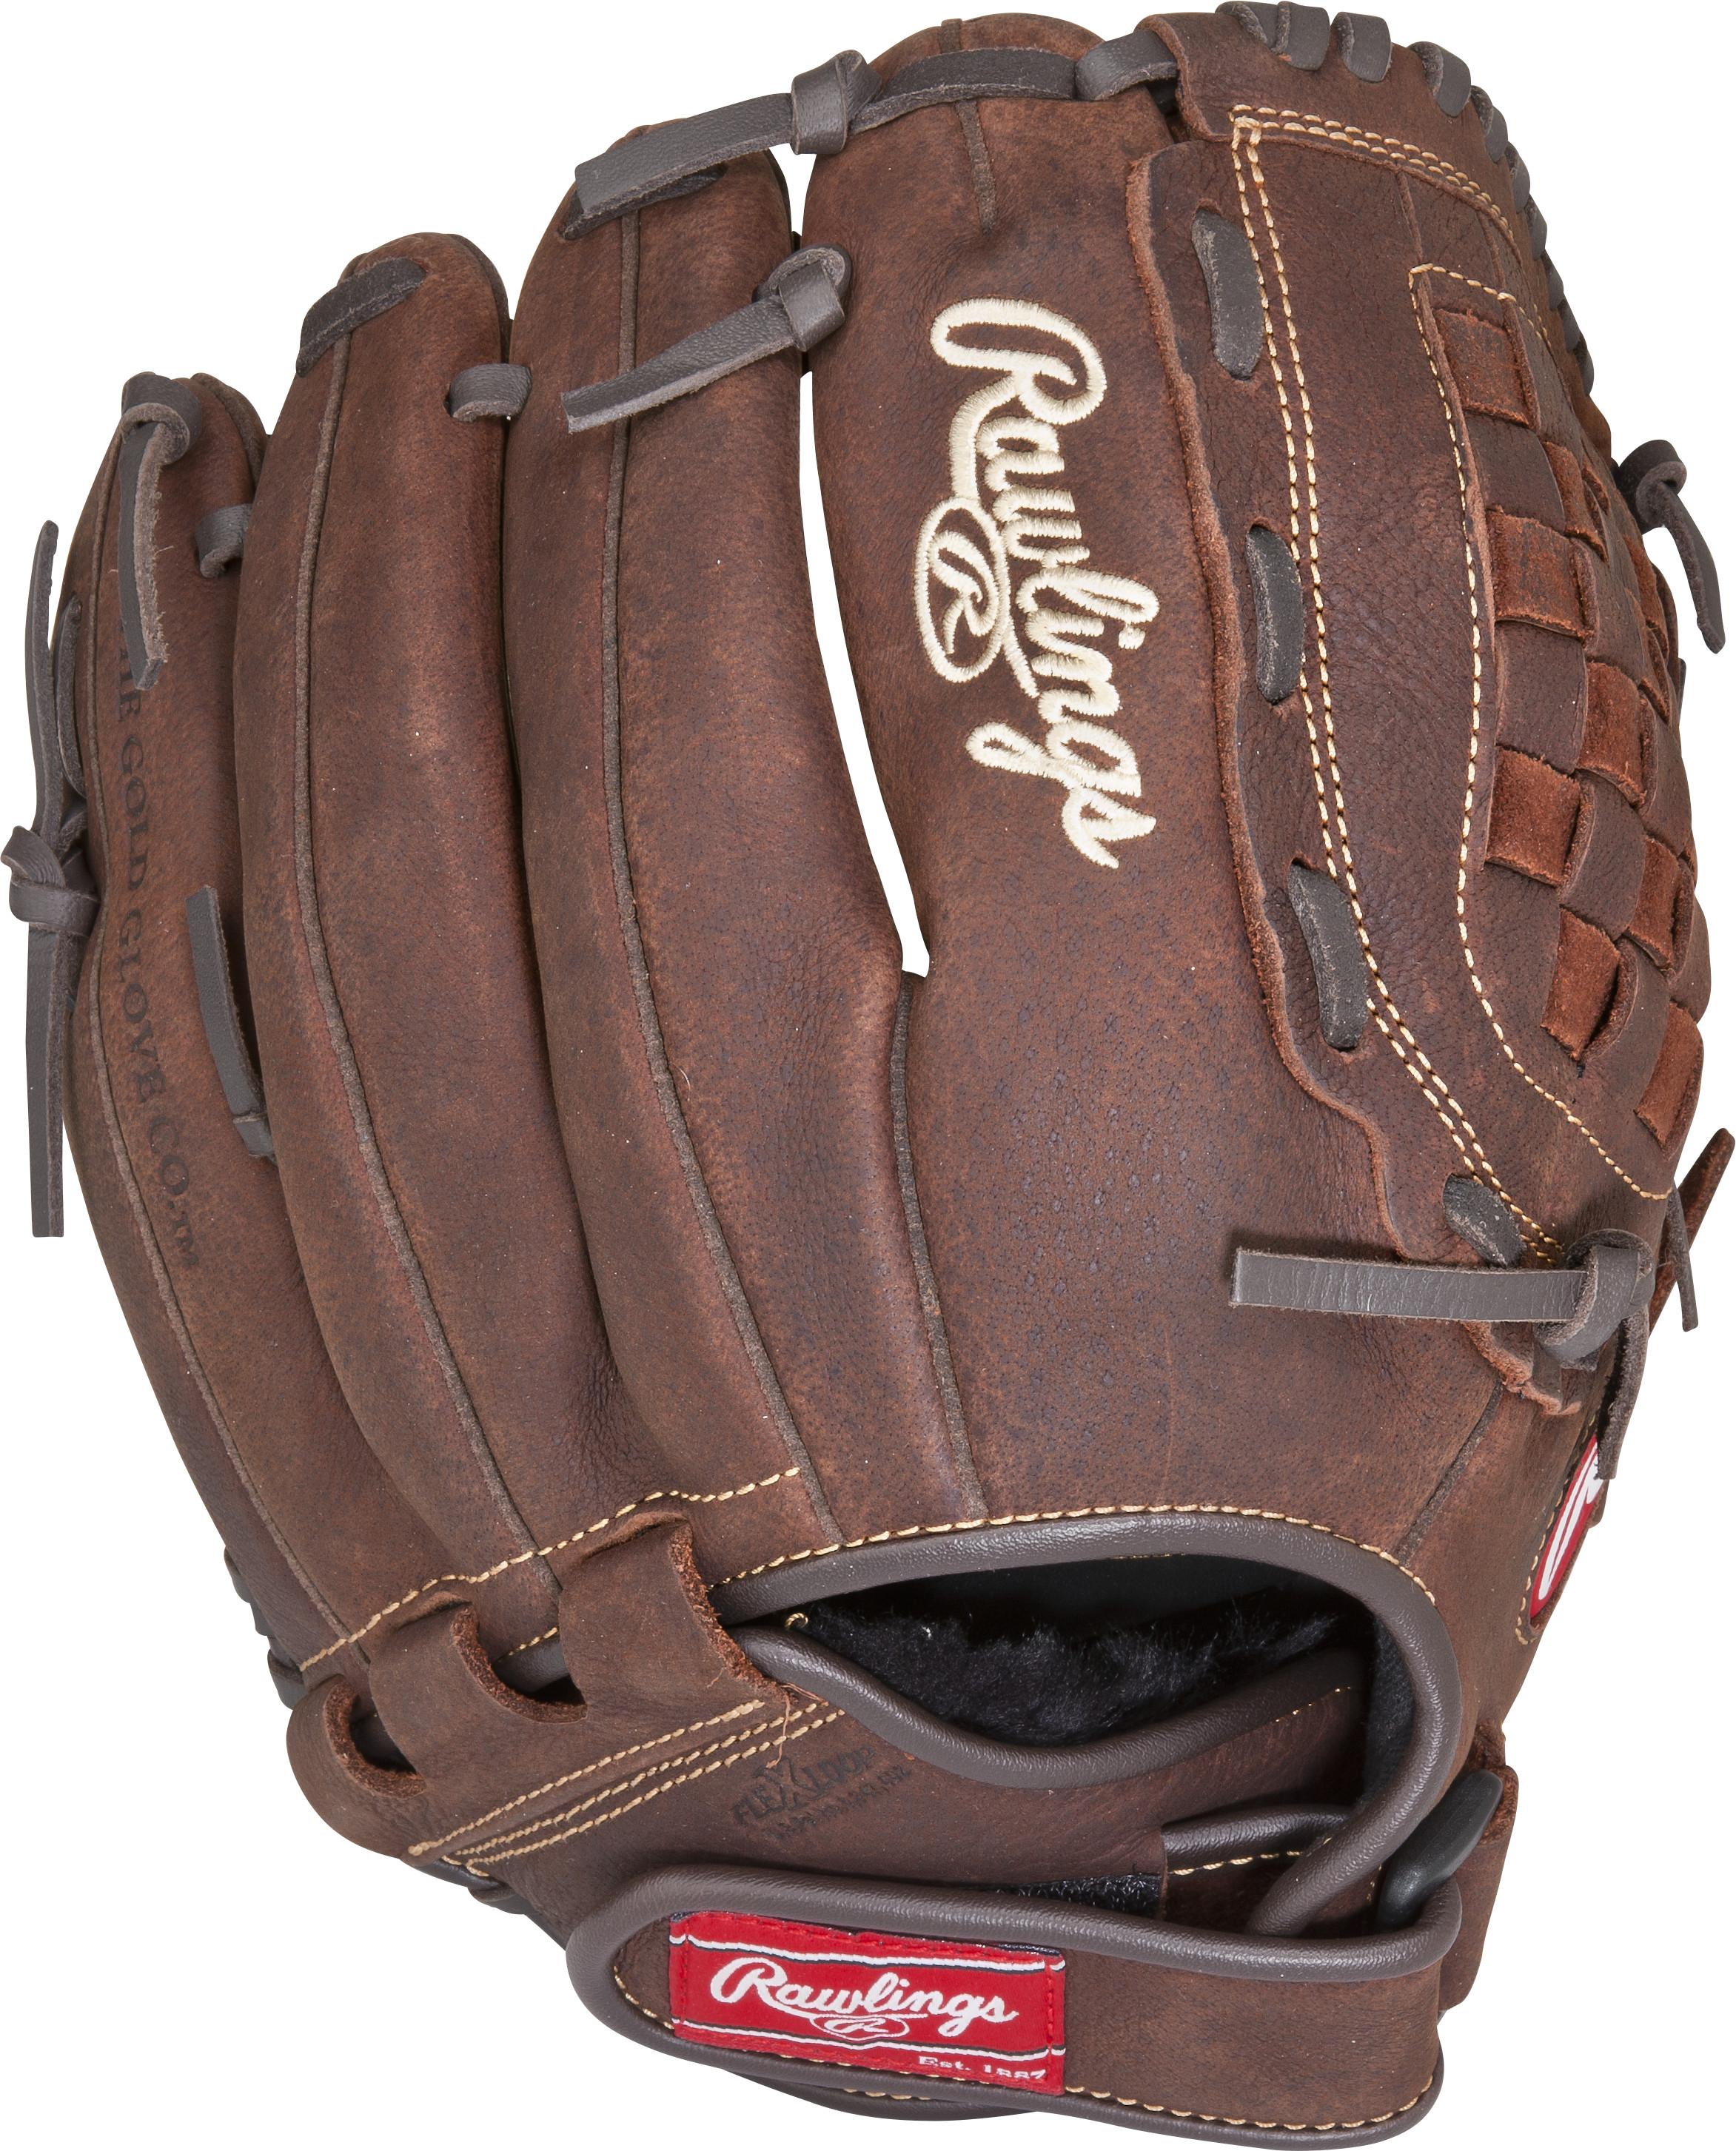 http://www.bestbatdeals.com/images/gloves/rawlings/P120BFL_back.jpg